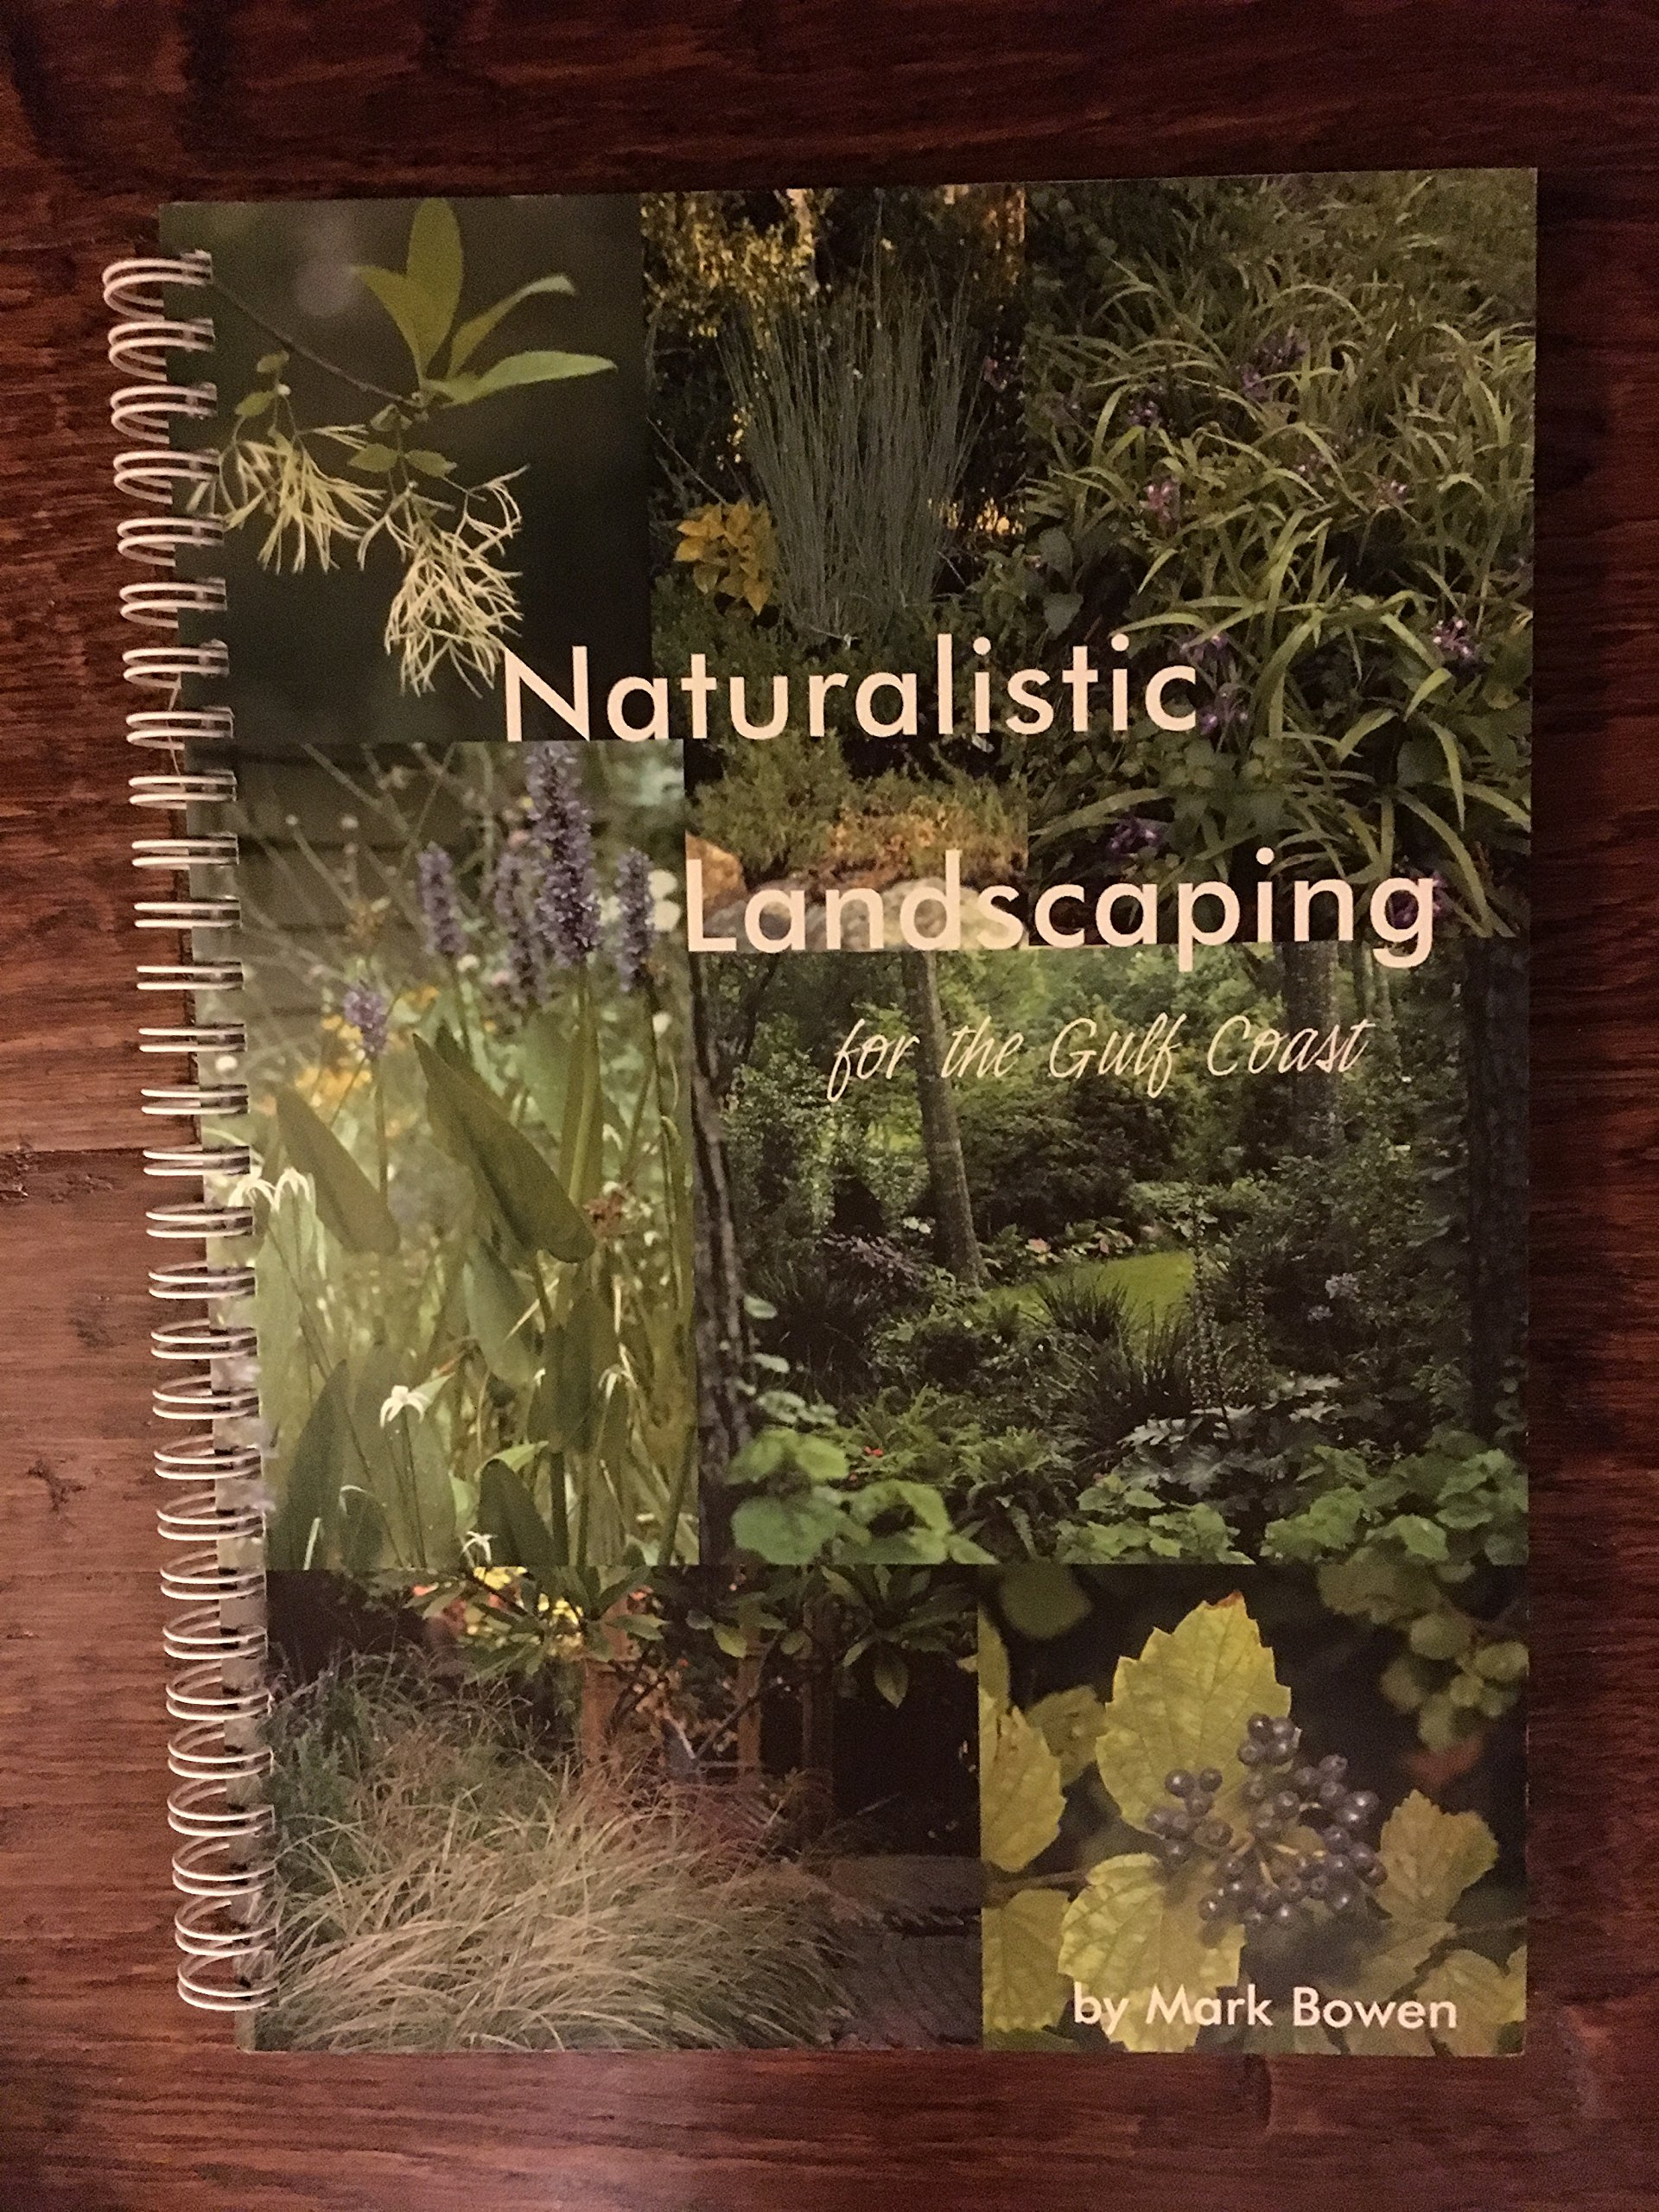 naturalistic-landscaping-for-the-gulf-coast